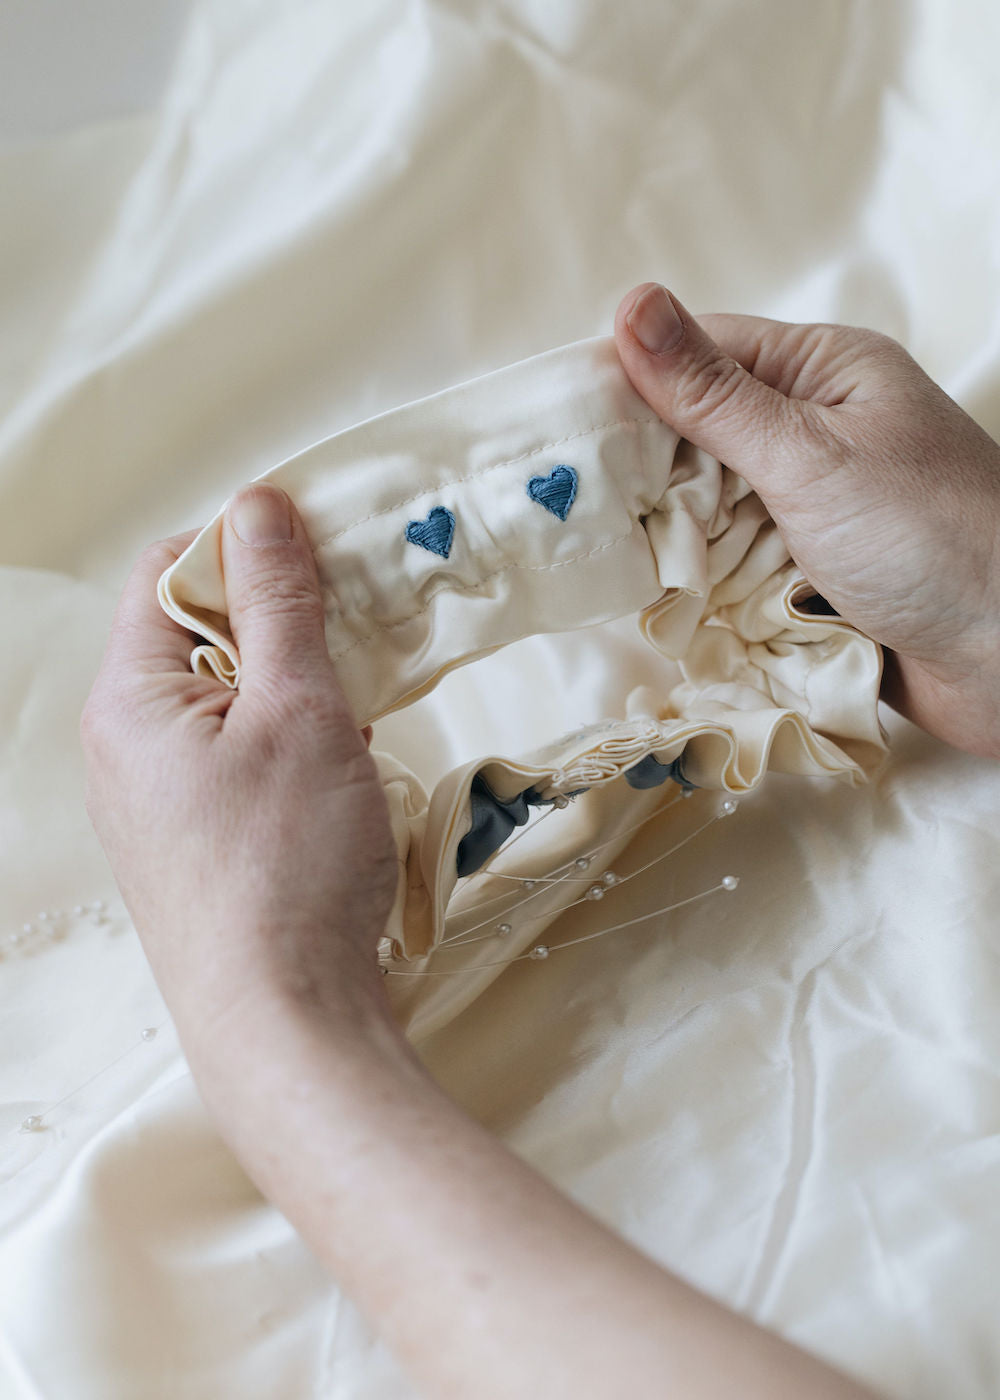 how to use great grandmother's satin wedding dress material - heirloom wedding garter with pearls & something blue handmade by The Garter Girl